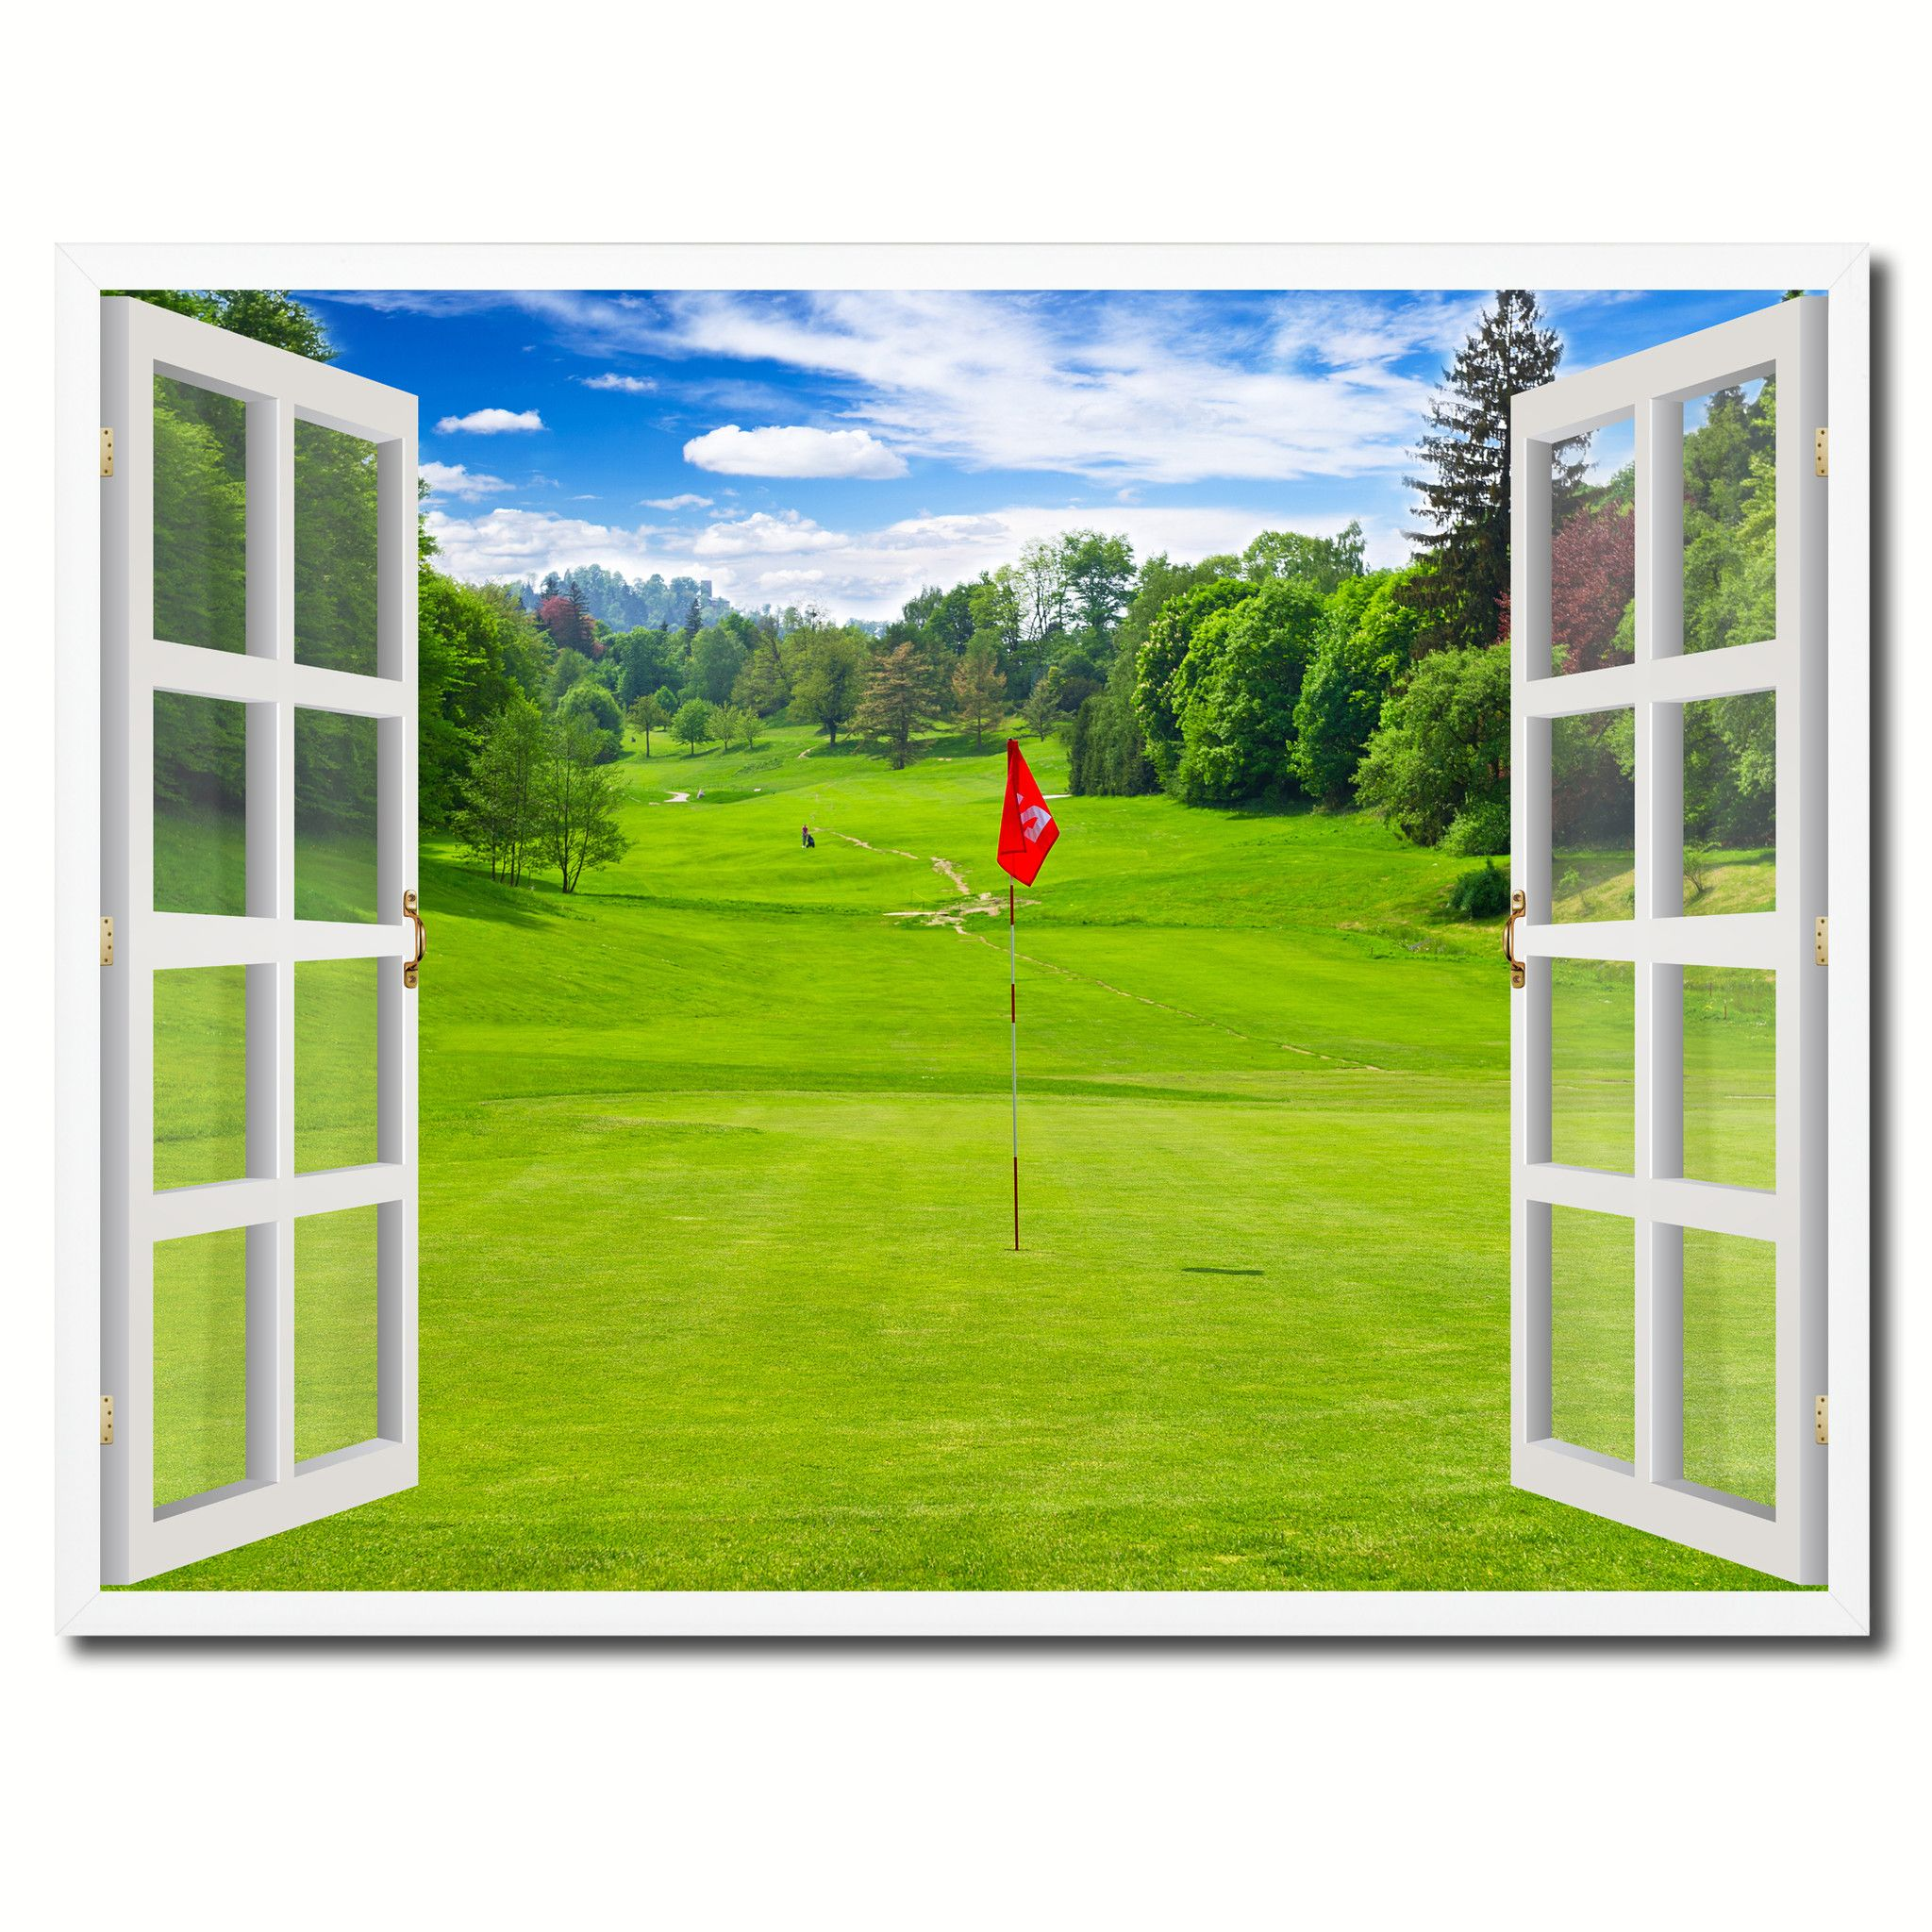 Landscape Golf Field Picture French Window Framed Canvas Print Home ...